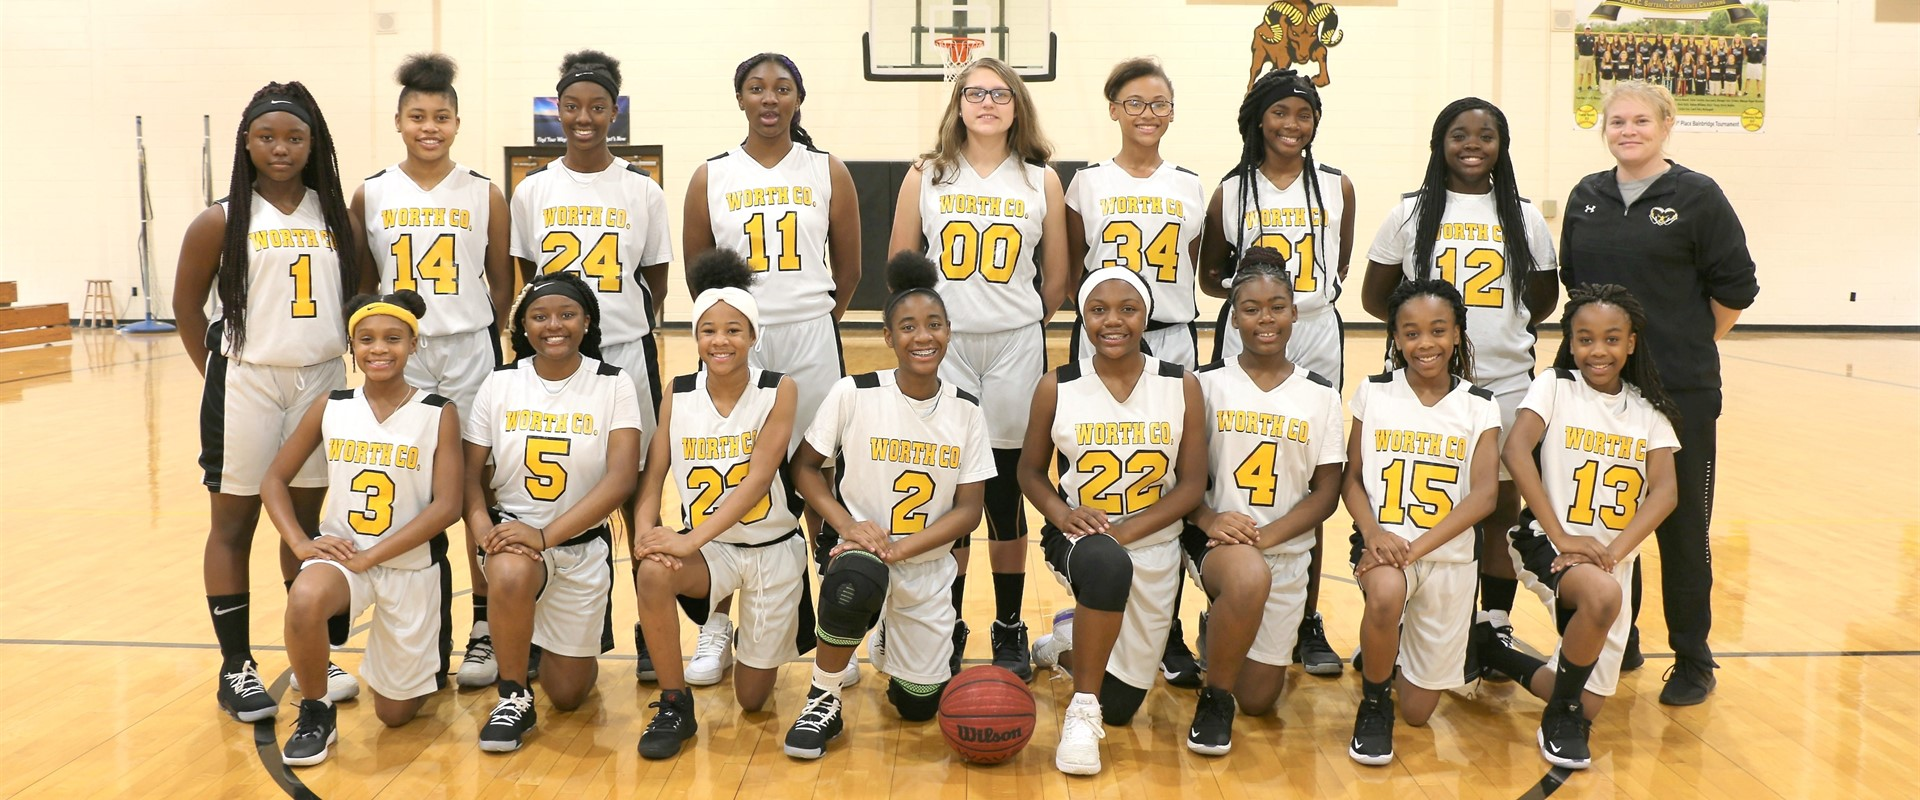 WCMS Girls Basketball